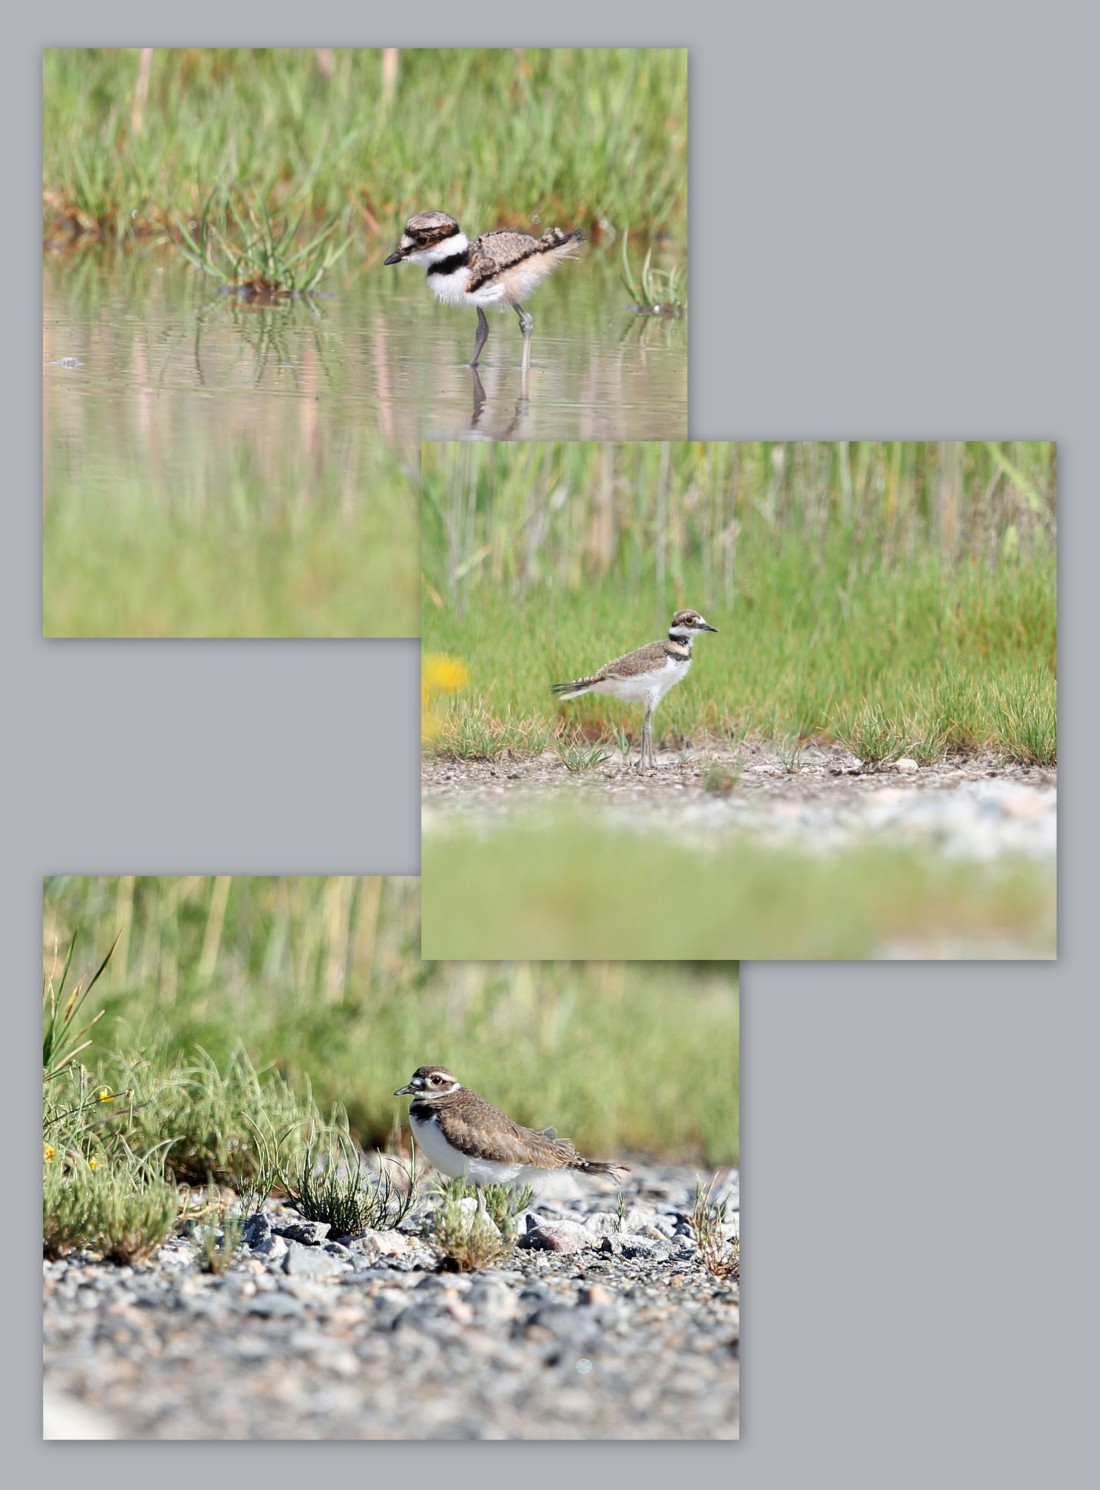 Killdeer chick growth 4/19-5/15